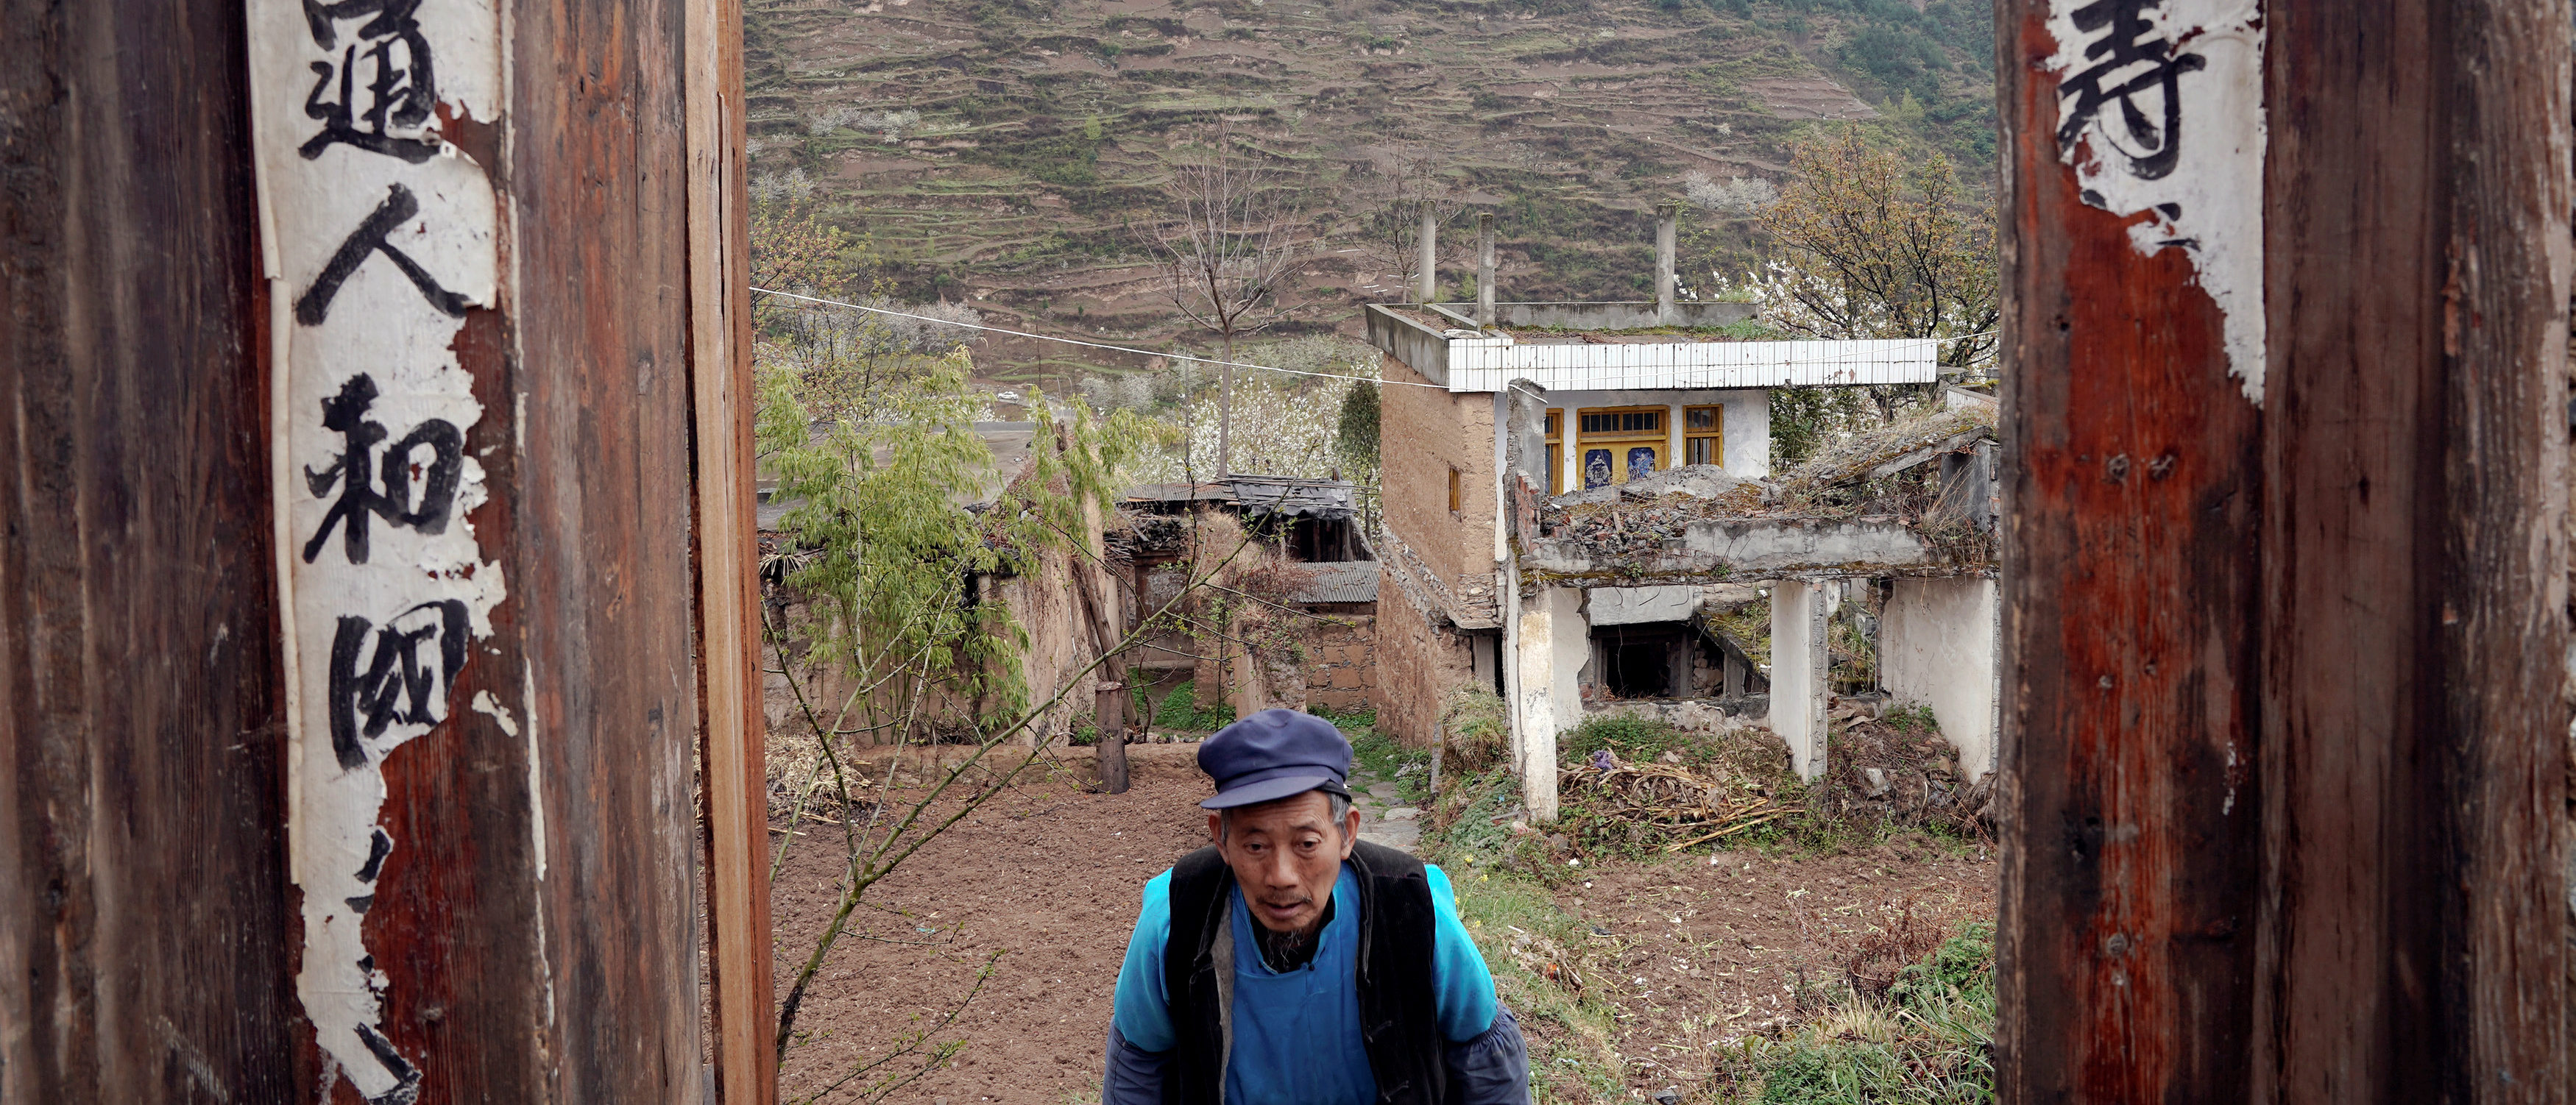 Surviving villager Ma Qingan walks through doors after leaving his old house at a minority village which was badly damaged in the 2008 Sichuan earthquake in Wenchuan county, Sichuan province, China, April 5, 2018. REUTERS/Jason Lee